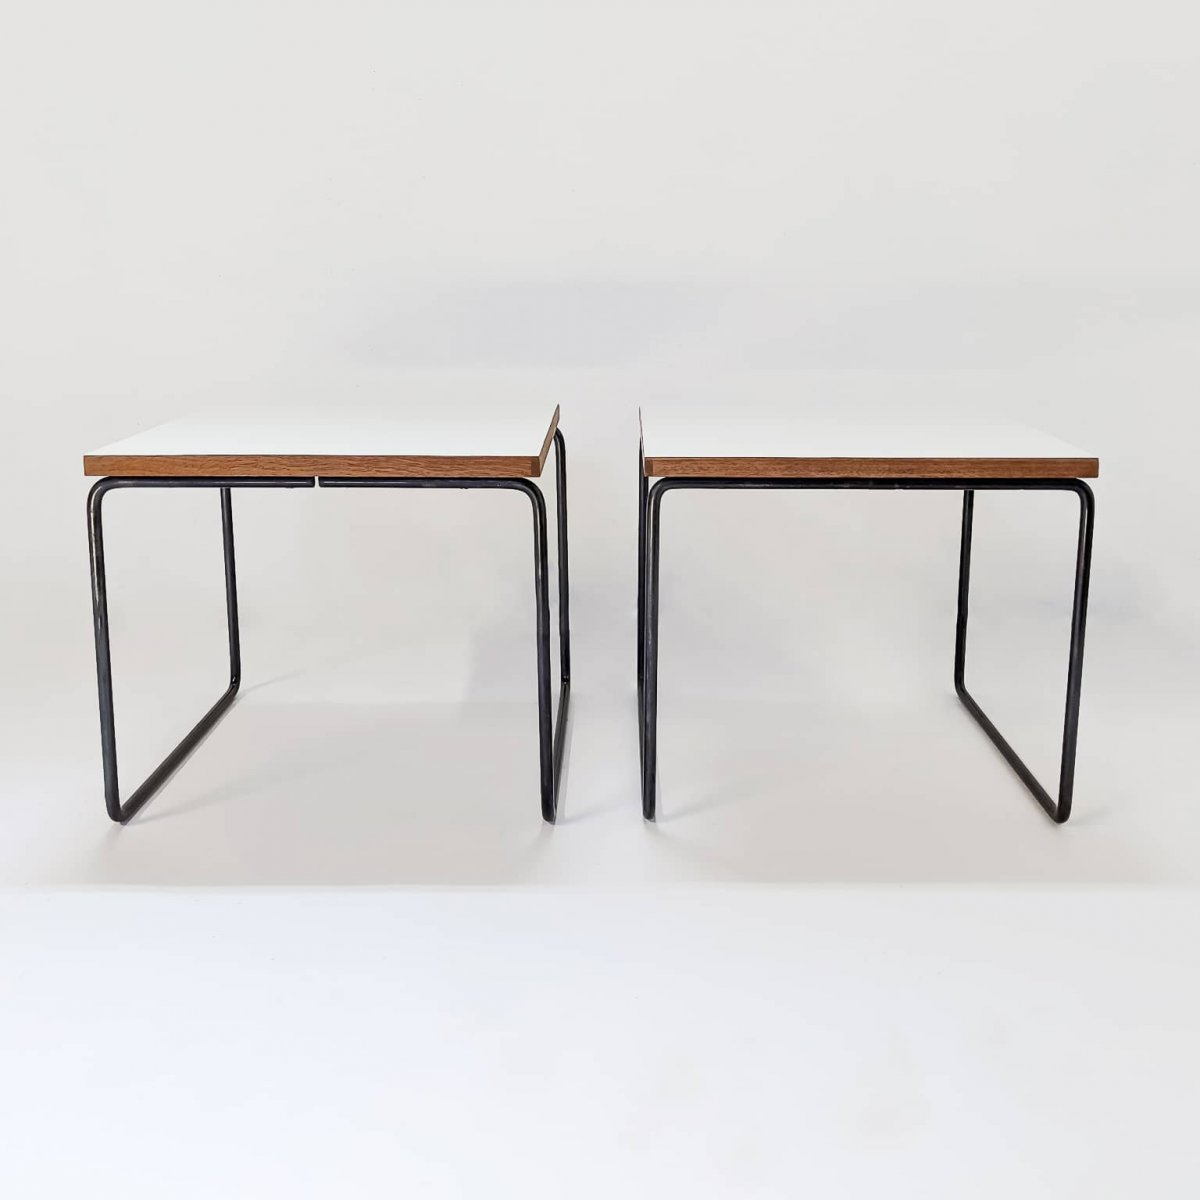 Duo Of Tables By Pierre Guariche, Steiner Edition 1955